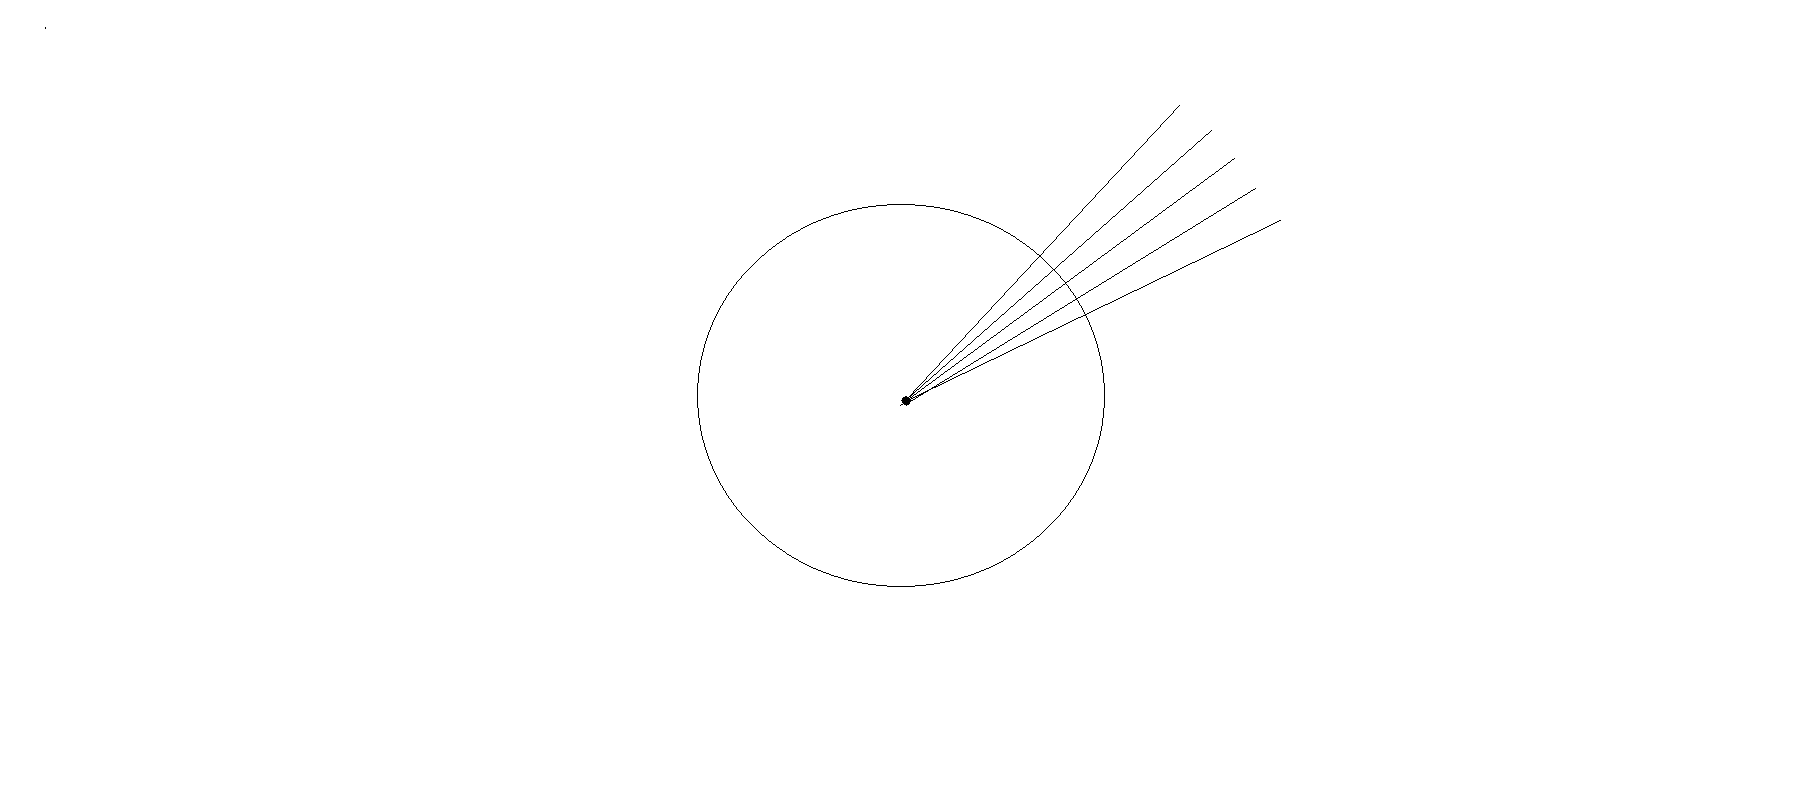 AutoCAD - How to measure and mark points on a curved line?